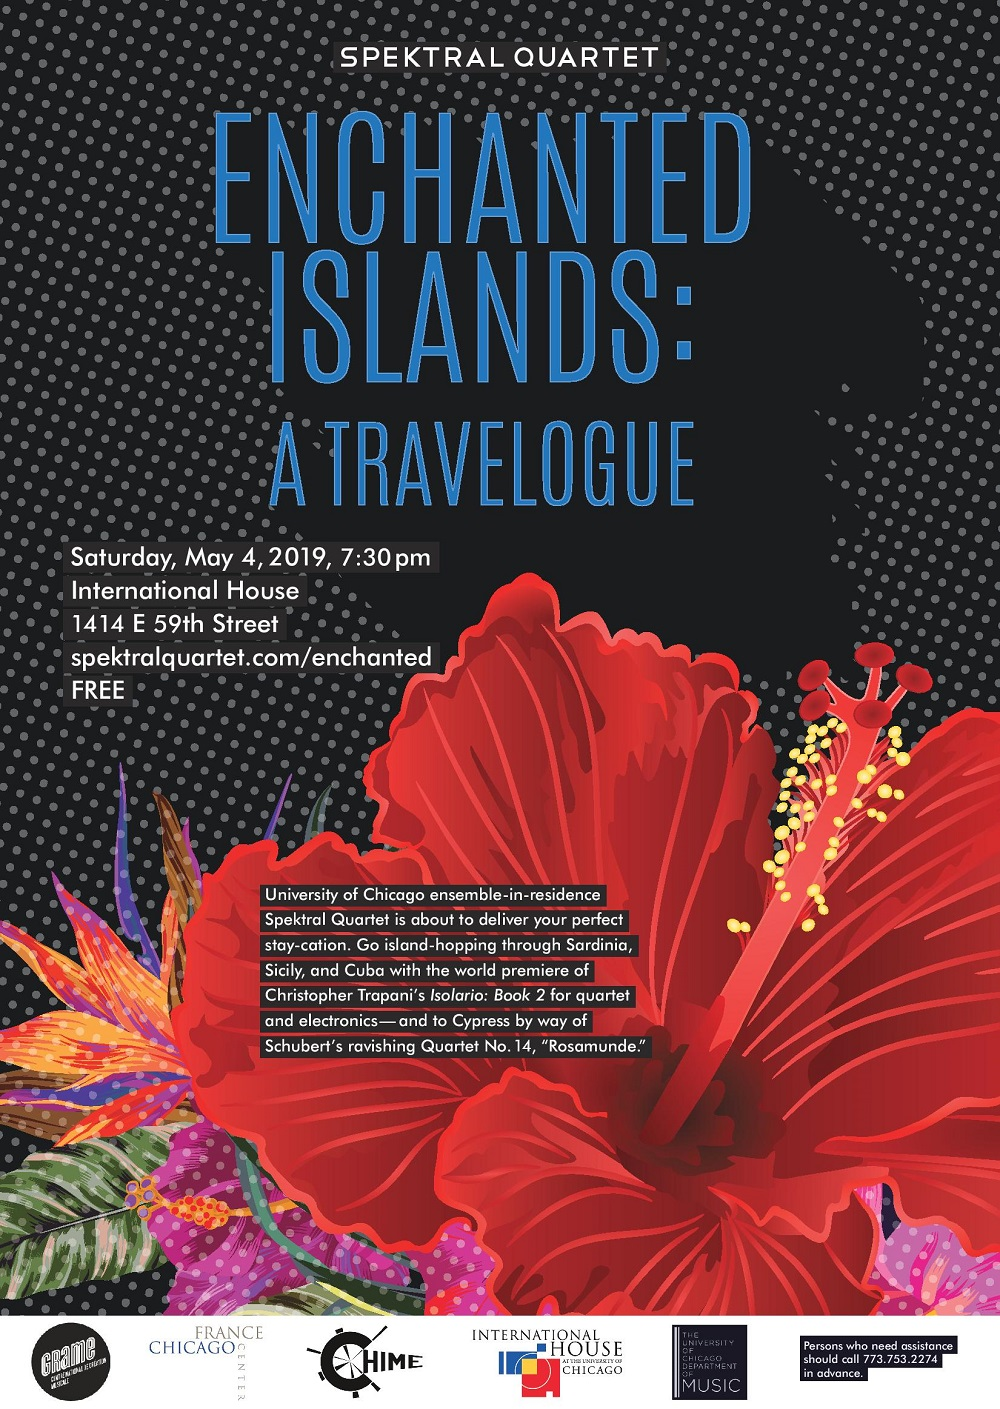 Enchanted Islands: A Travelogue' by Spektral Quartet